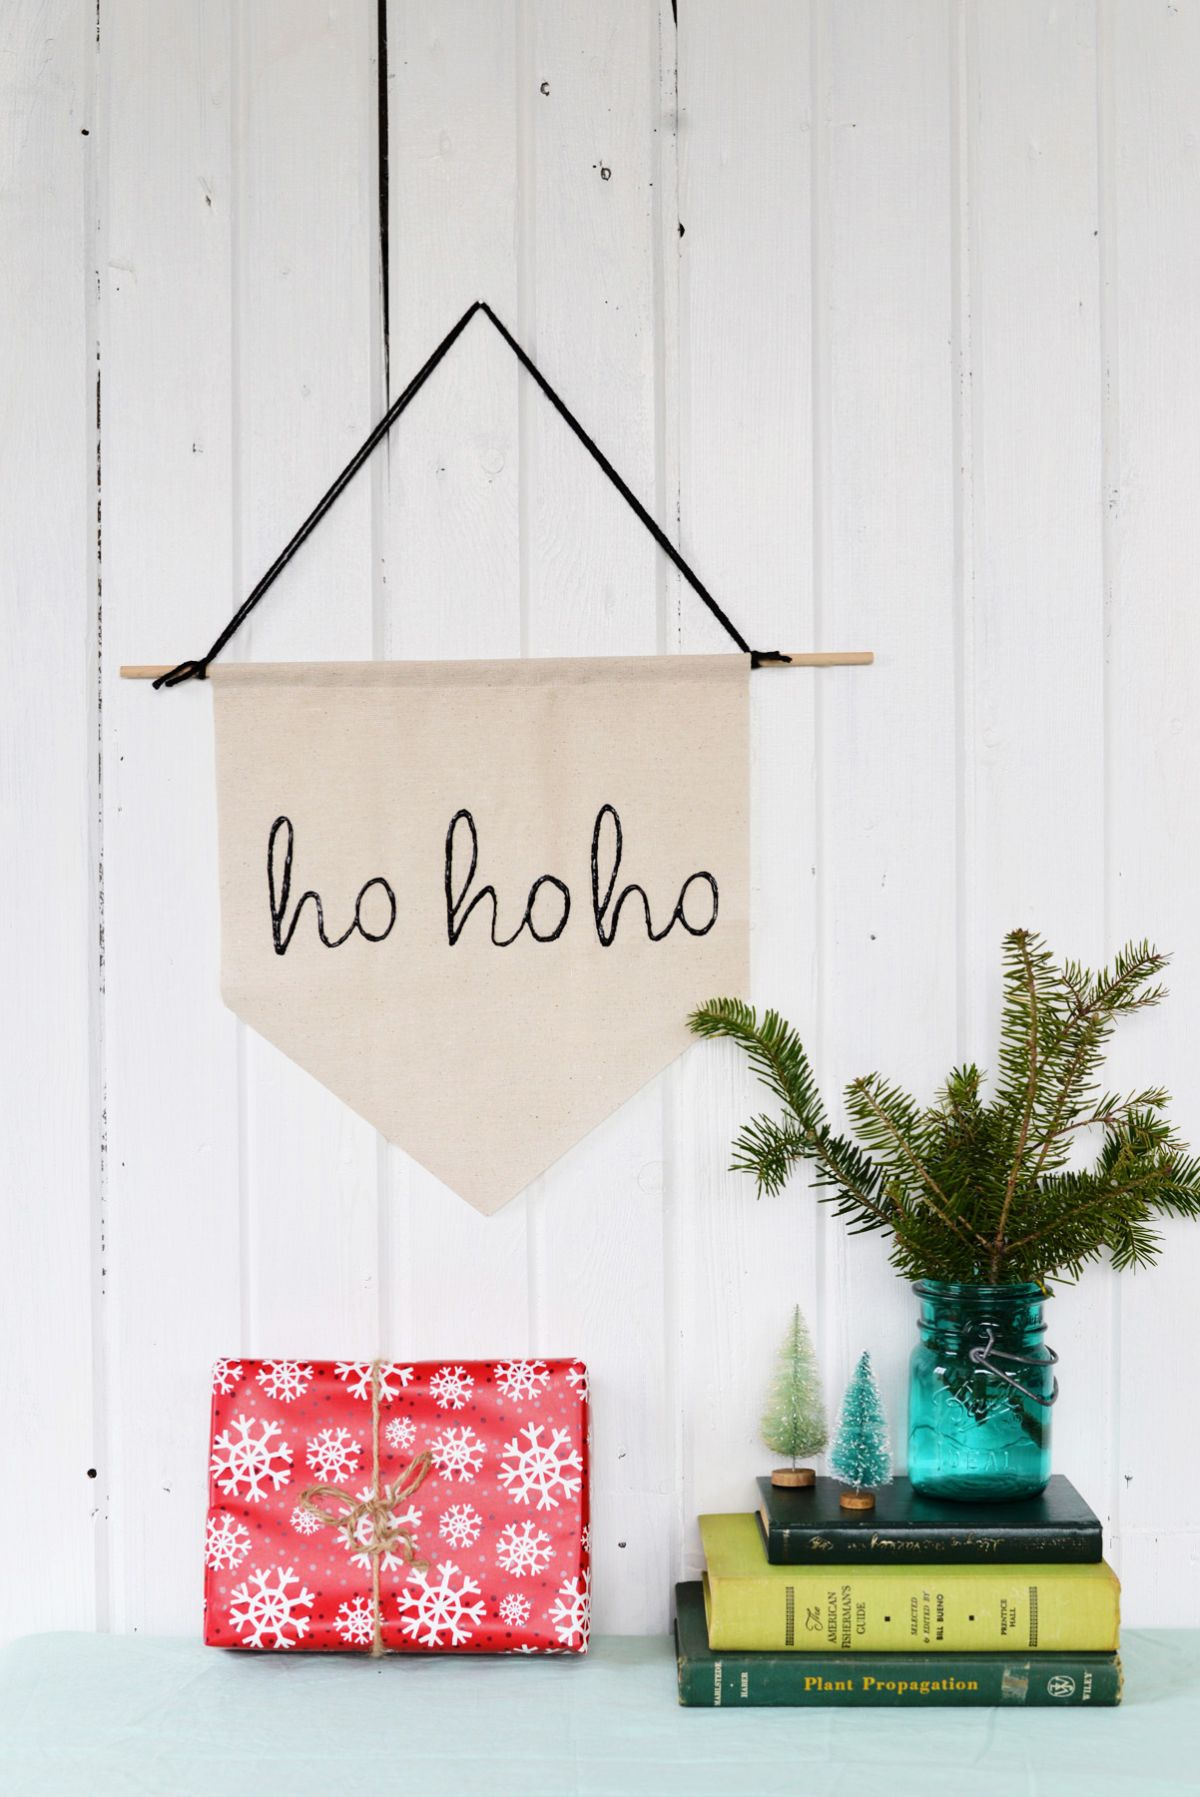 Diy banner ideas to make your celebrations more festive obsigen for christmas you have several interesting options when it comes to customizing a diy banner however if youd like to distance yourself a little bit from solutioingenieria Image collections